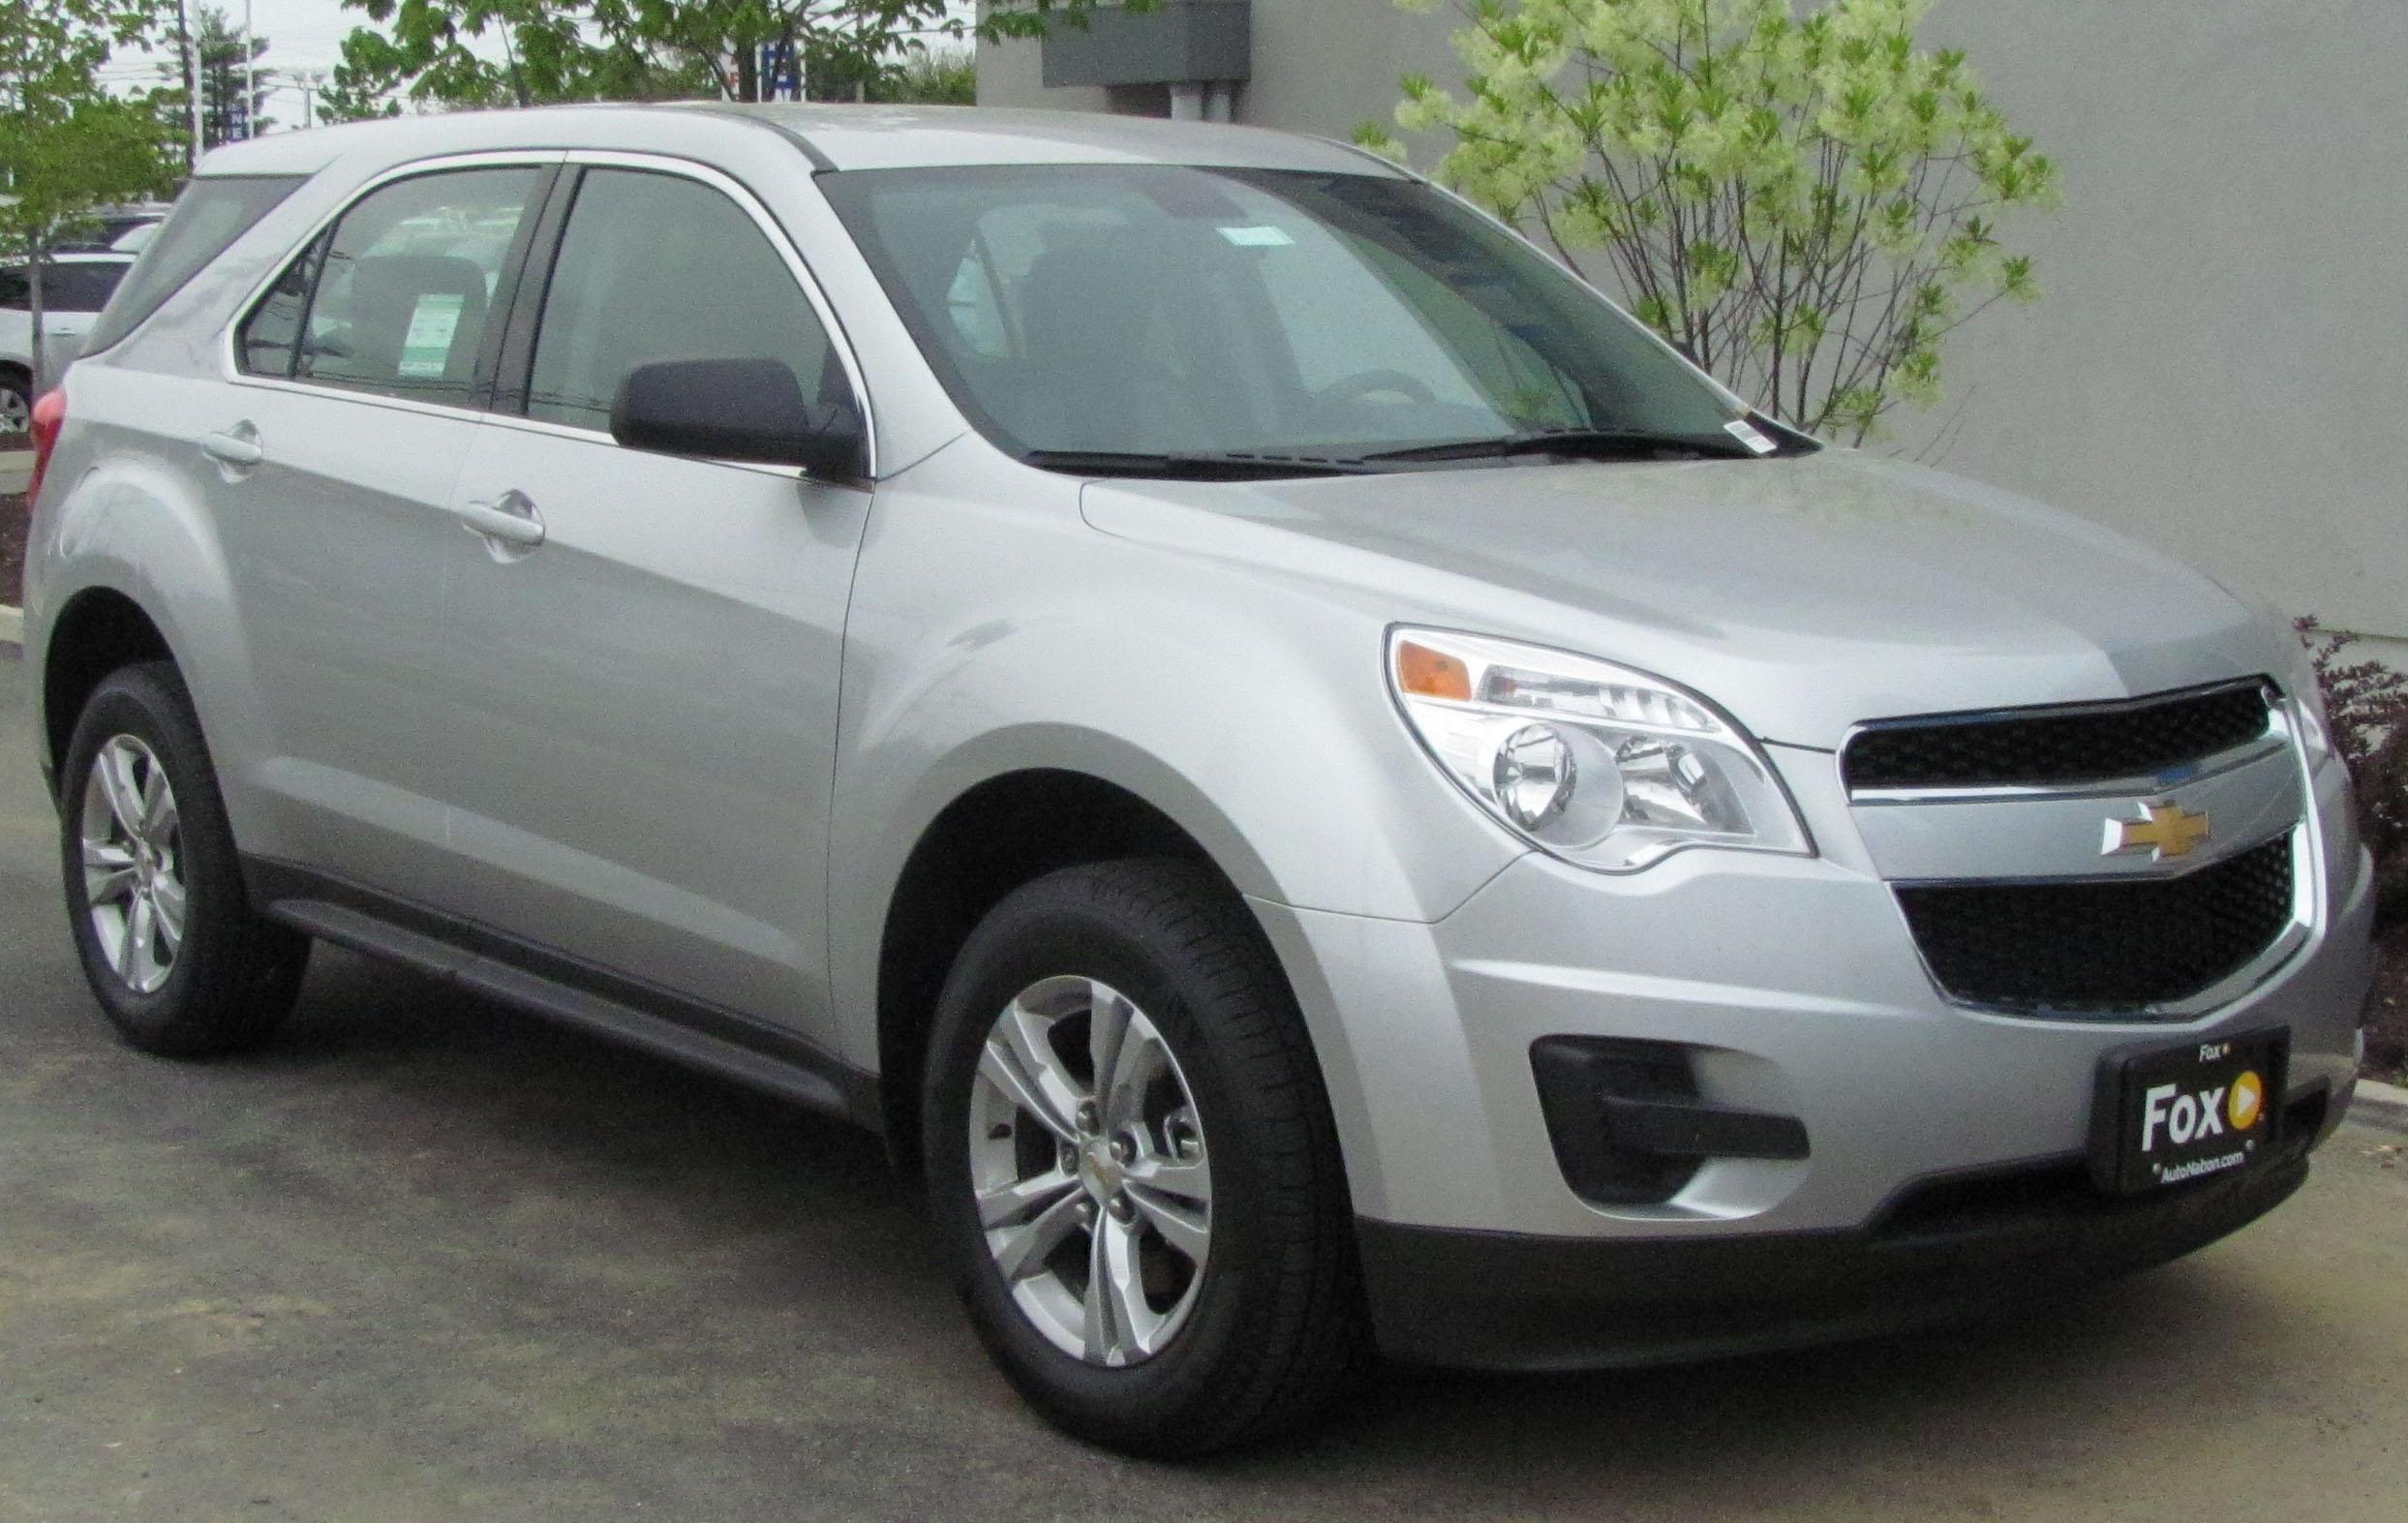 Ford Dealership San Diego >> Automotive Gallery: 2011 Chevrolet Equinox in Washington DC Review